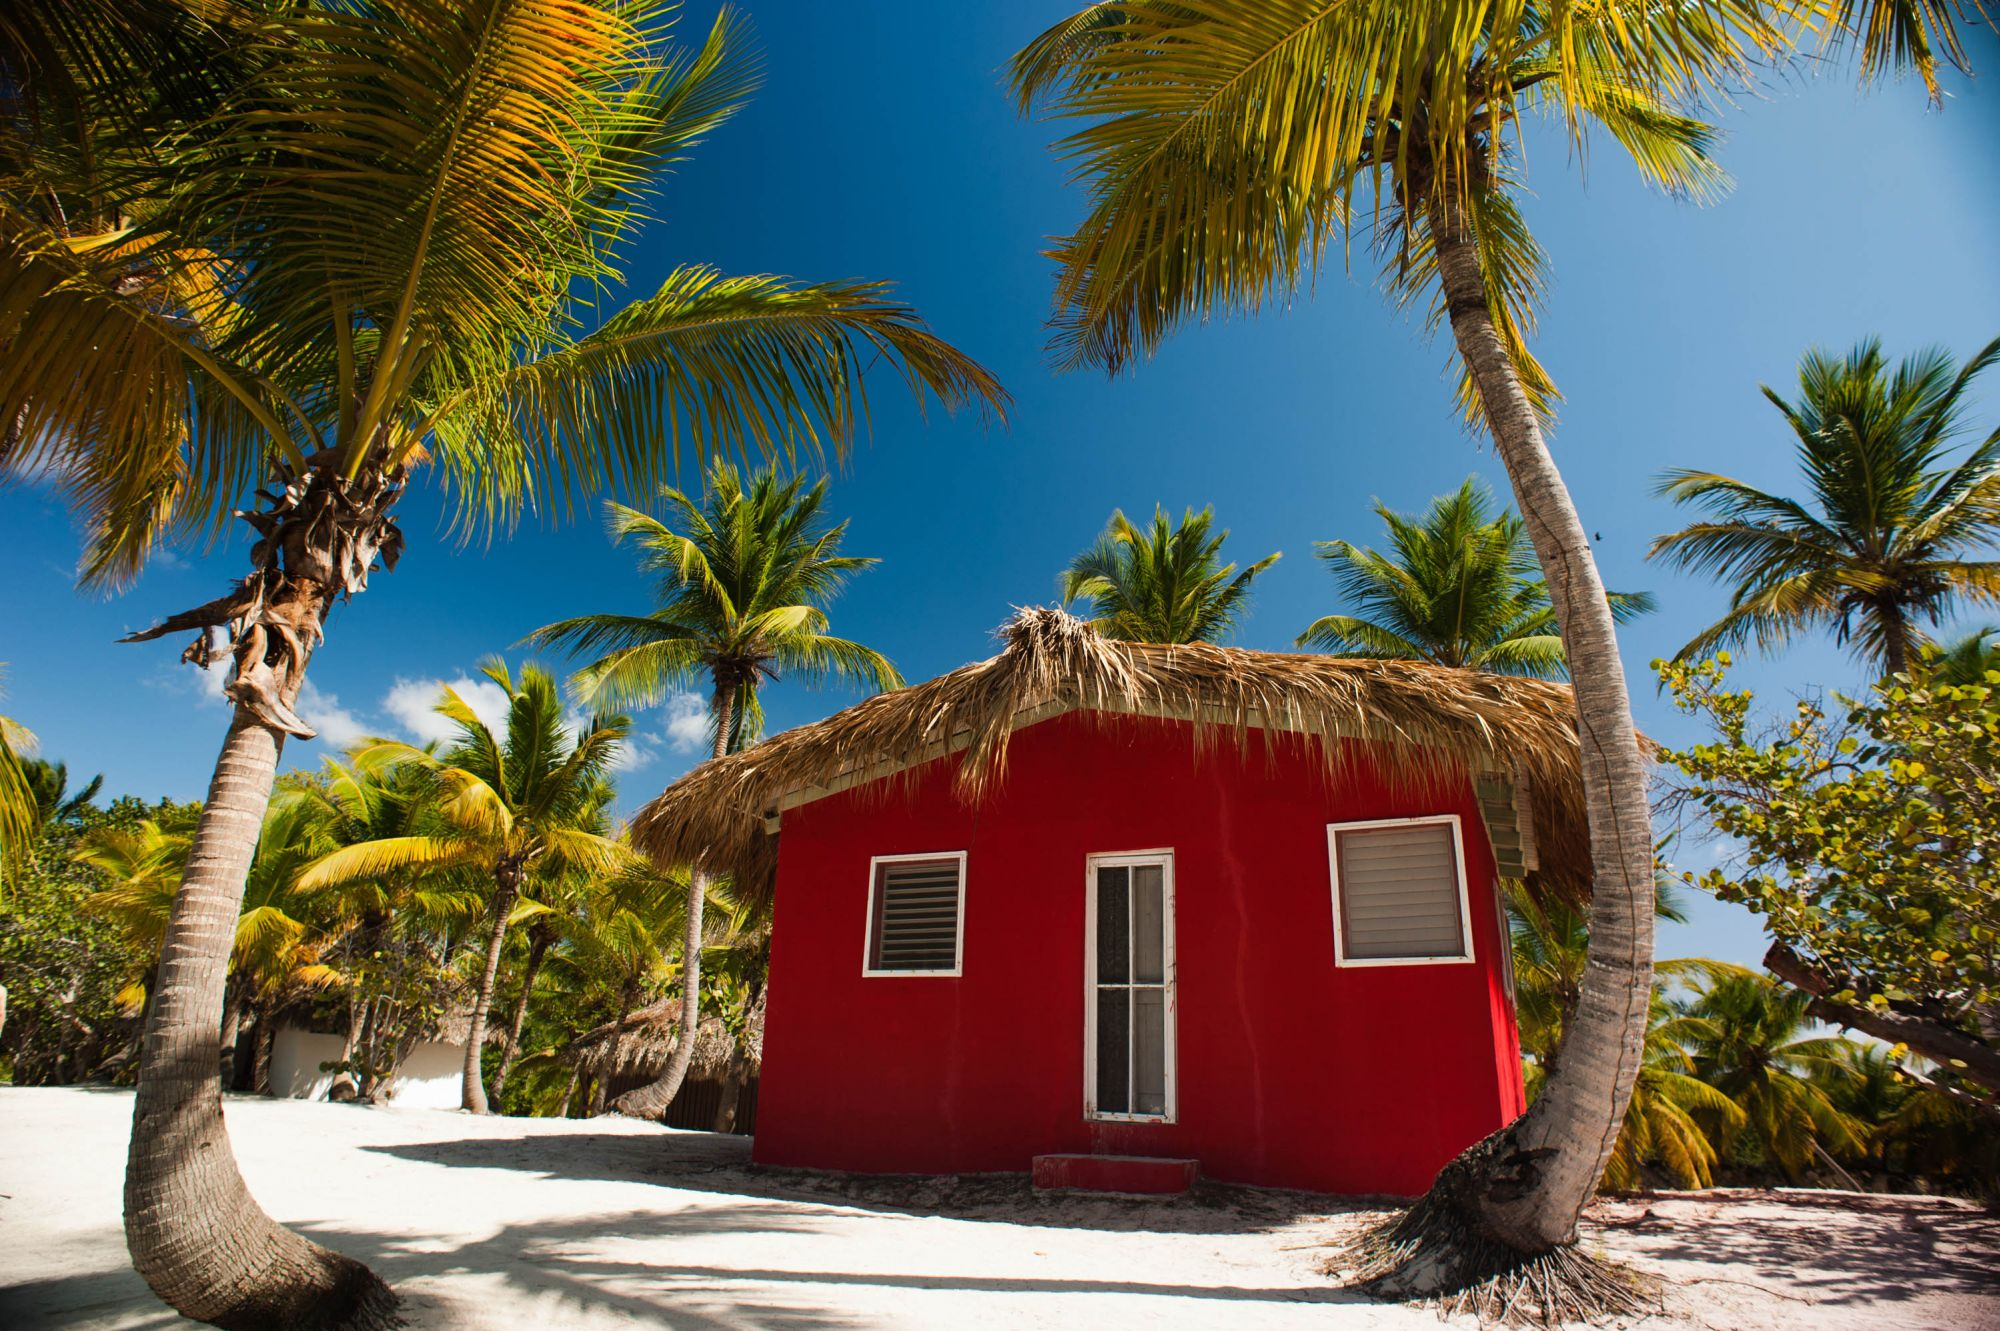 files/Rozdilu/Goteli Krajin/Dominicana/Banner/Catalina_Island,_La_Romana,_Dominican_Republic._A_typical_bungalow_nearby_cost_line,_shaded_with_palm_trees_(1).jpg